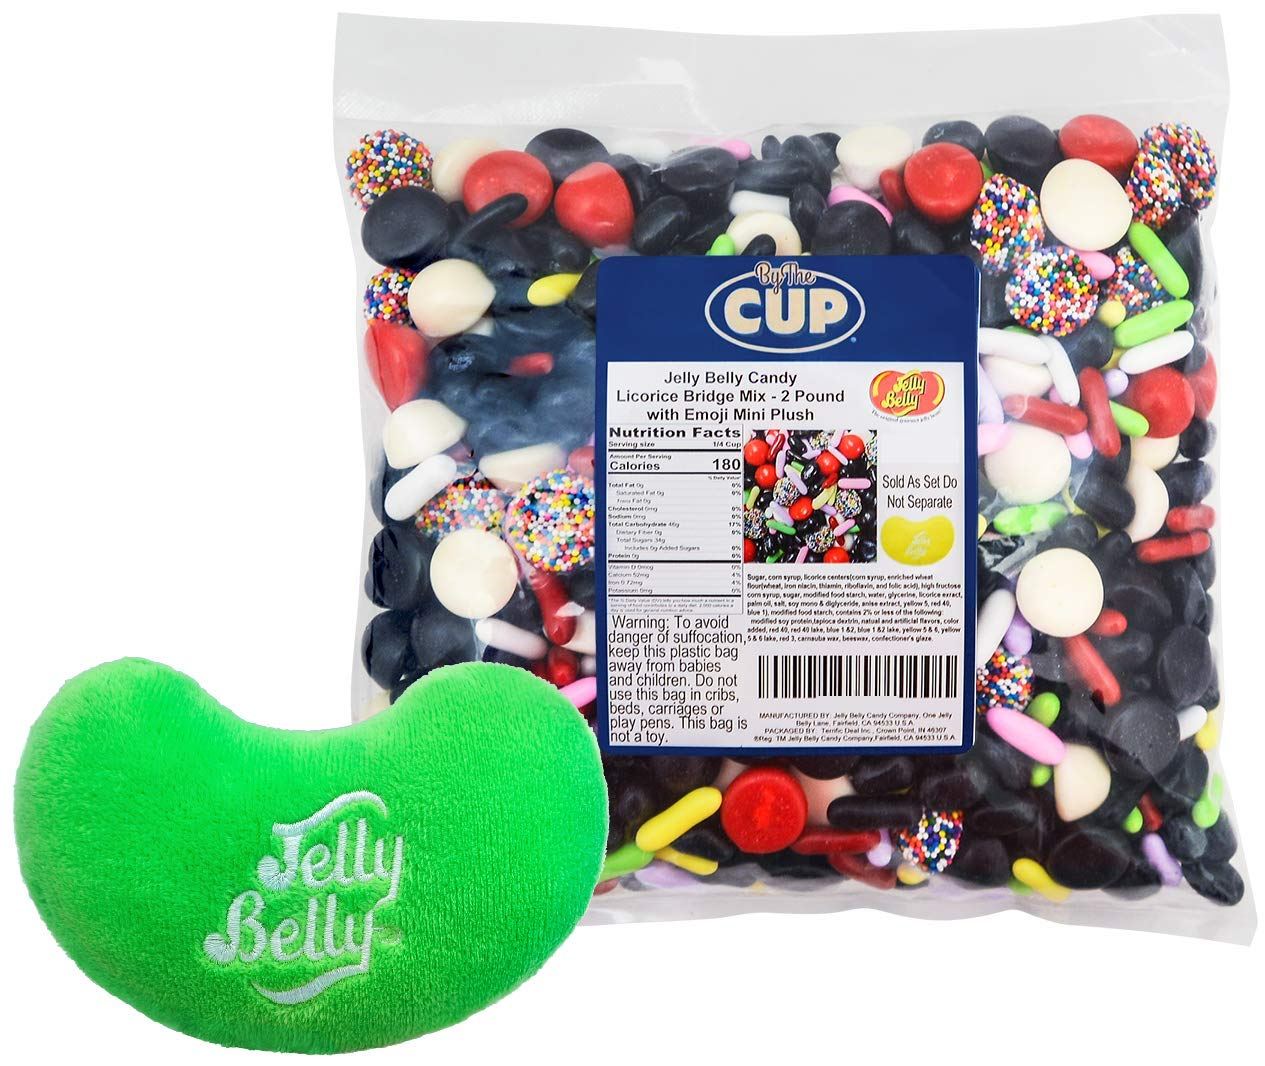 Jelly Belly Candy - Licorice Bridge Mix includes Licorice Pastels, Jelly Beans, and Buttons (Non-pareil with Seeds, Red and Black) 2 Pound Bag - with Jelly Belly Mini Jelly Bean Plushy by Jelly Belly